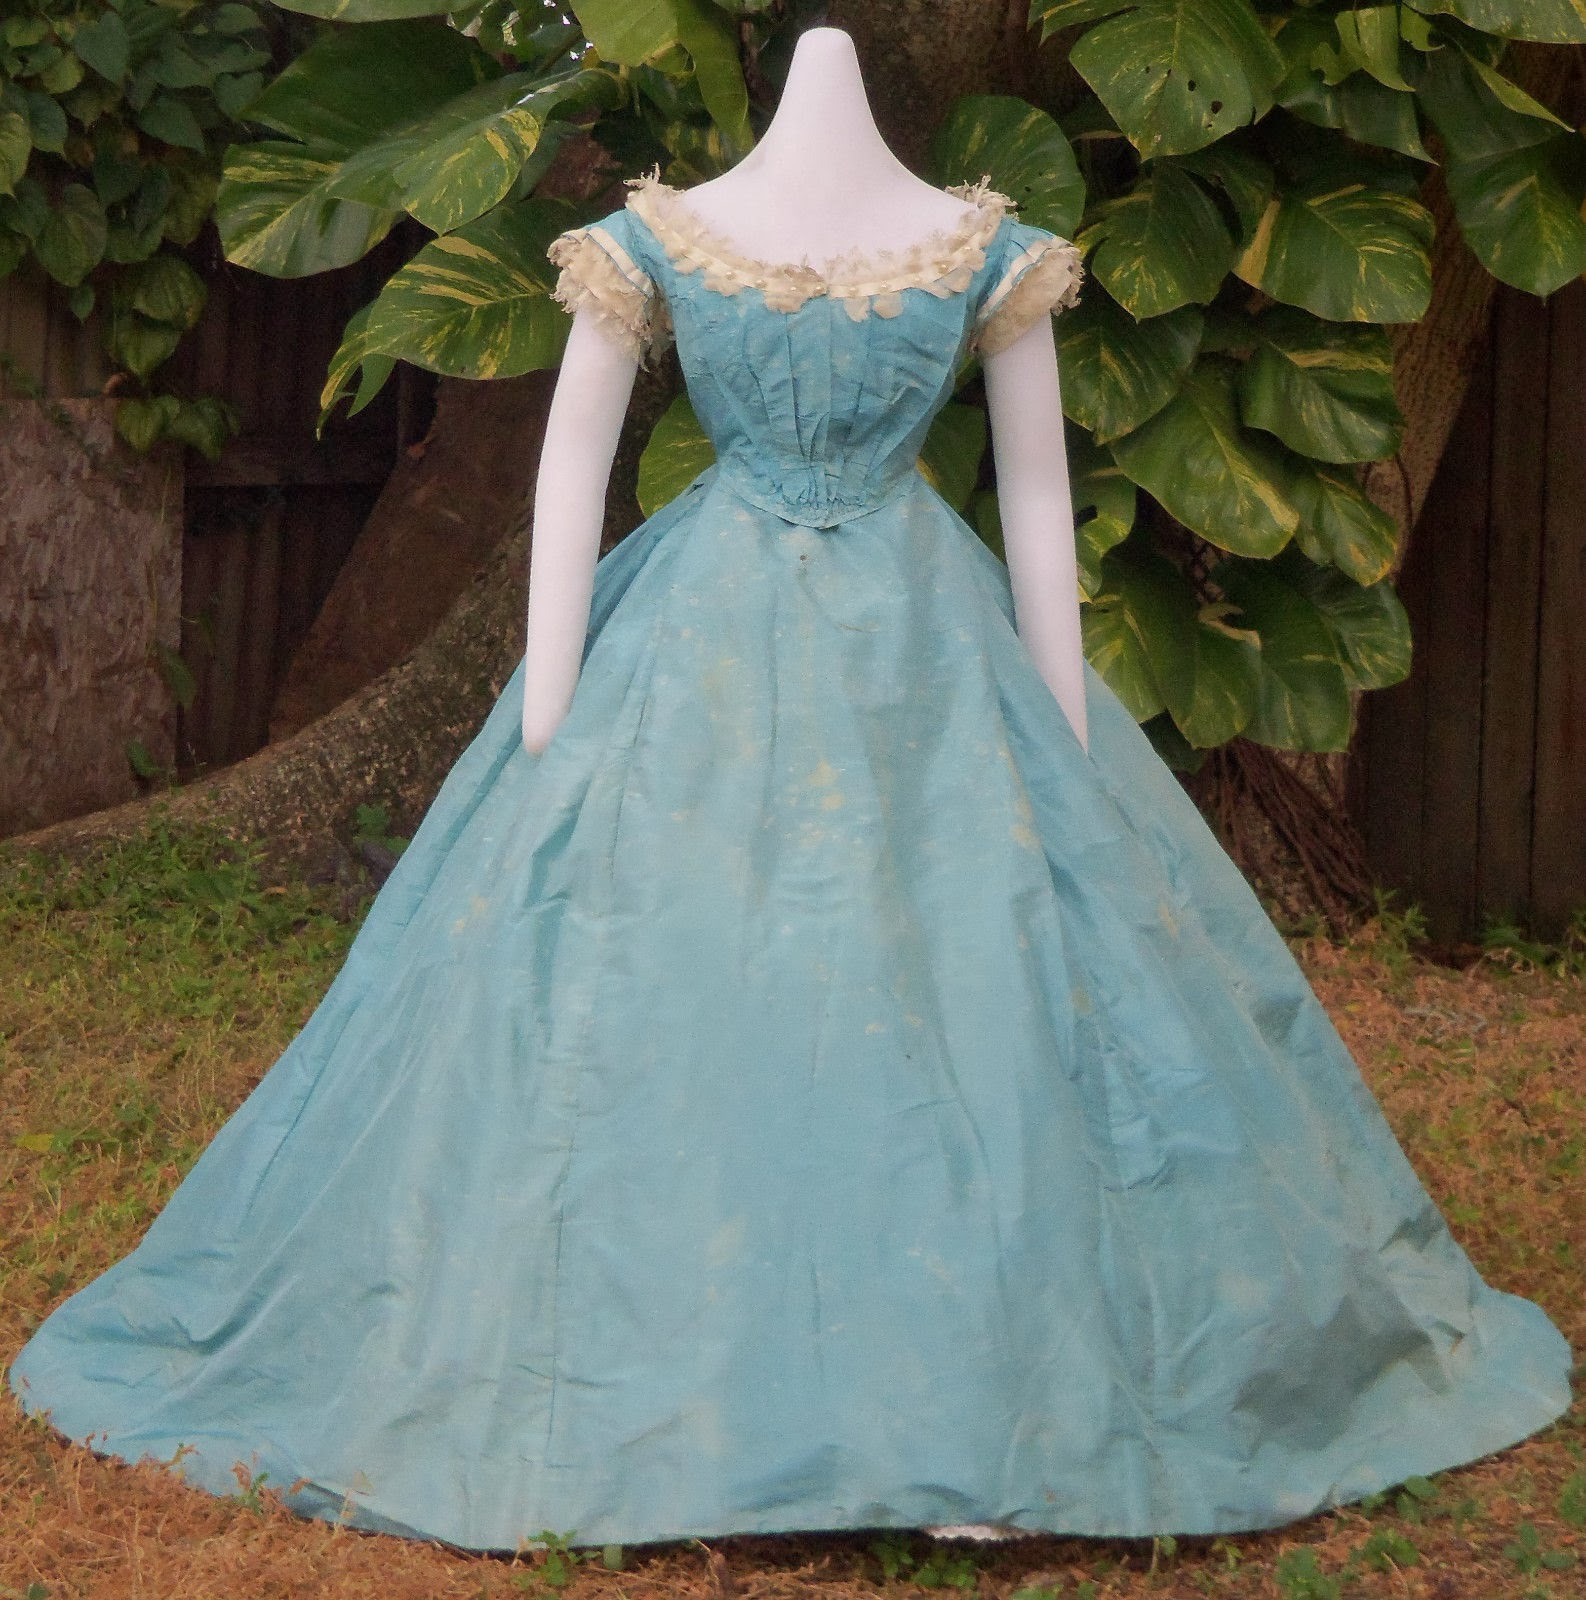 All The Pretty Dresses: American Civil War Era Ball Gown in ...